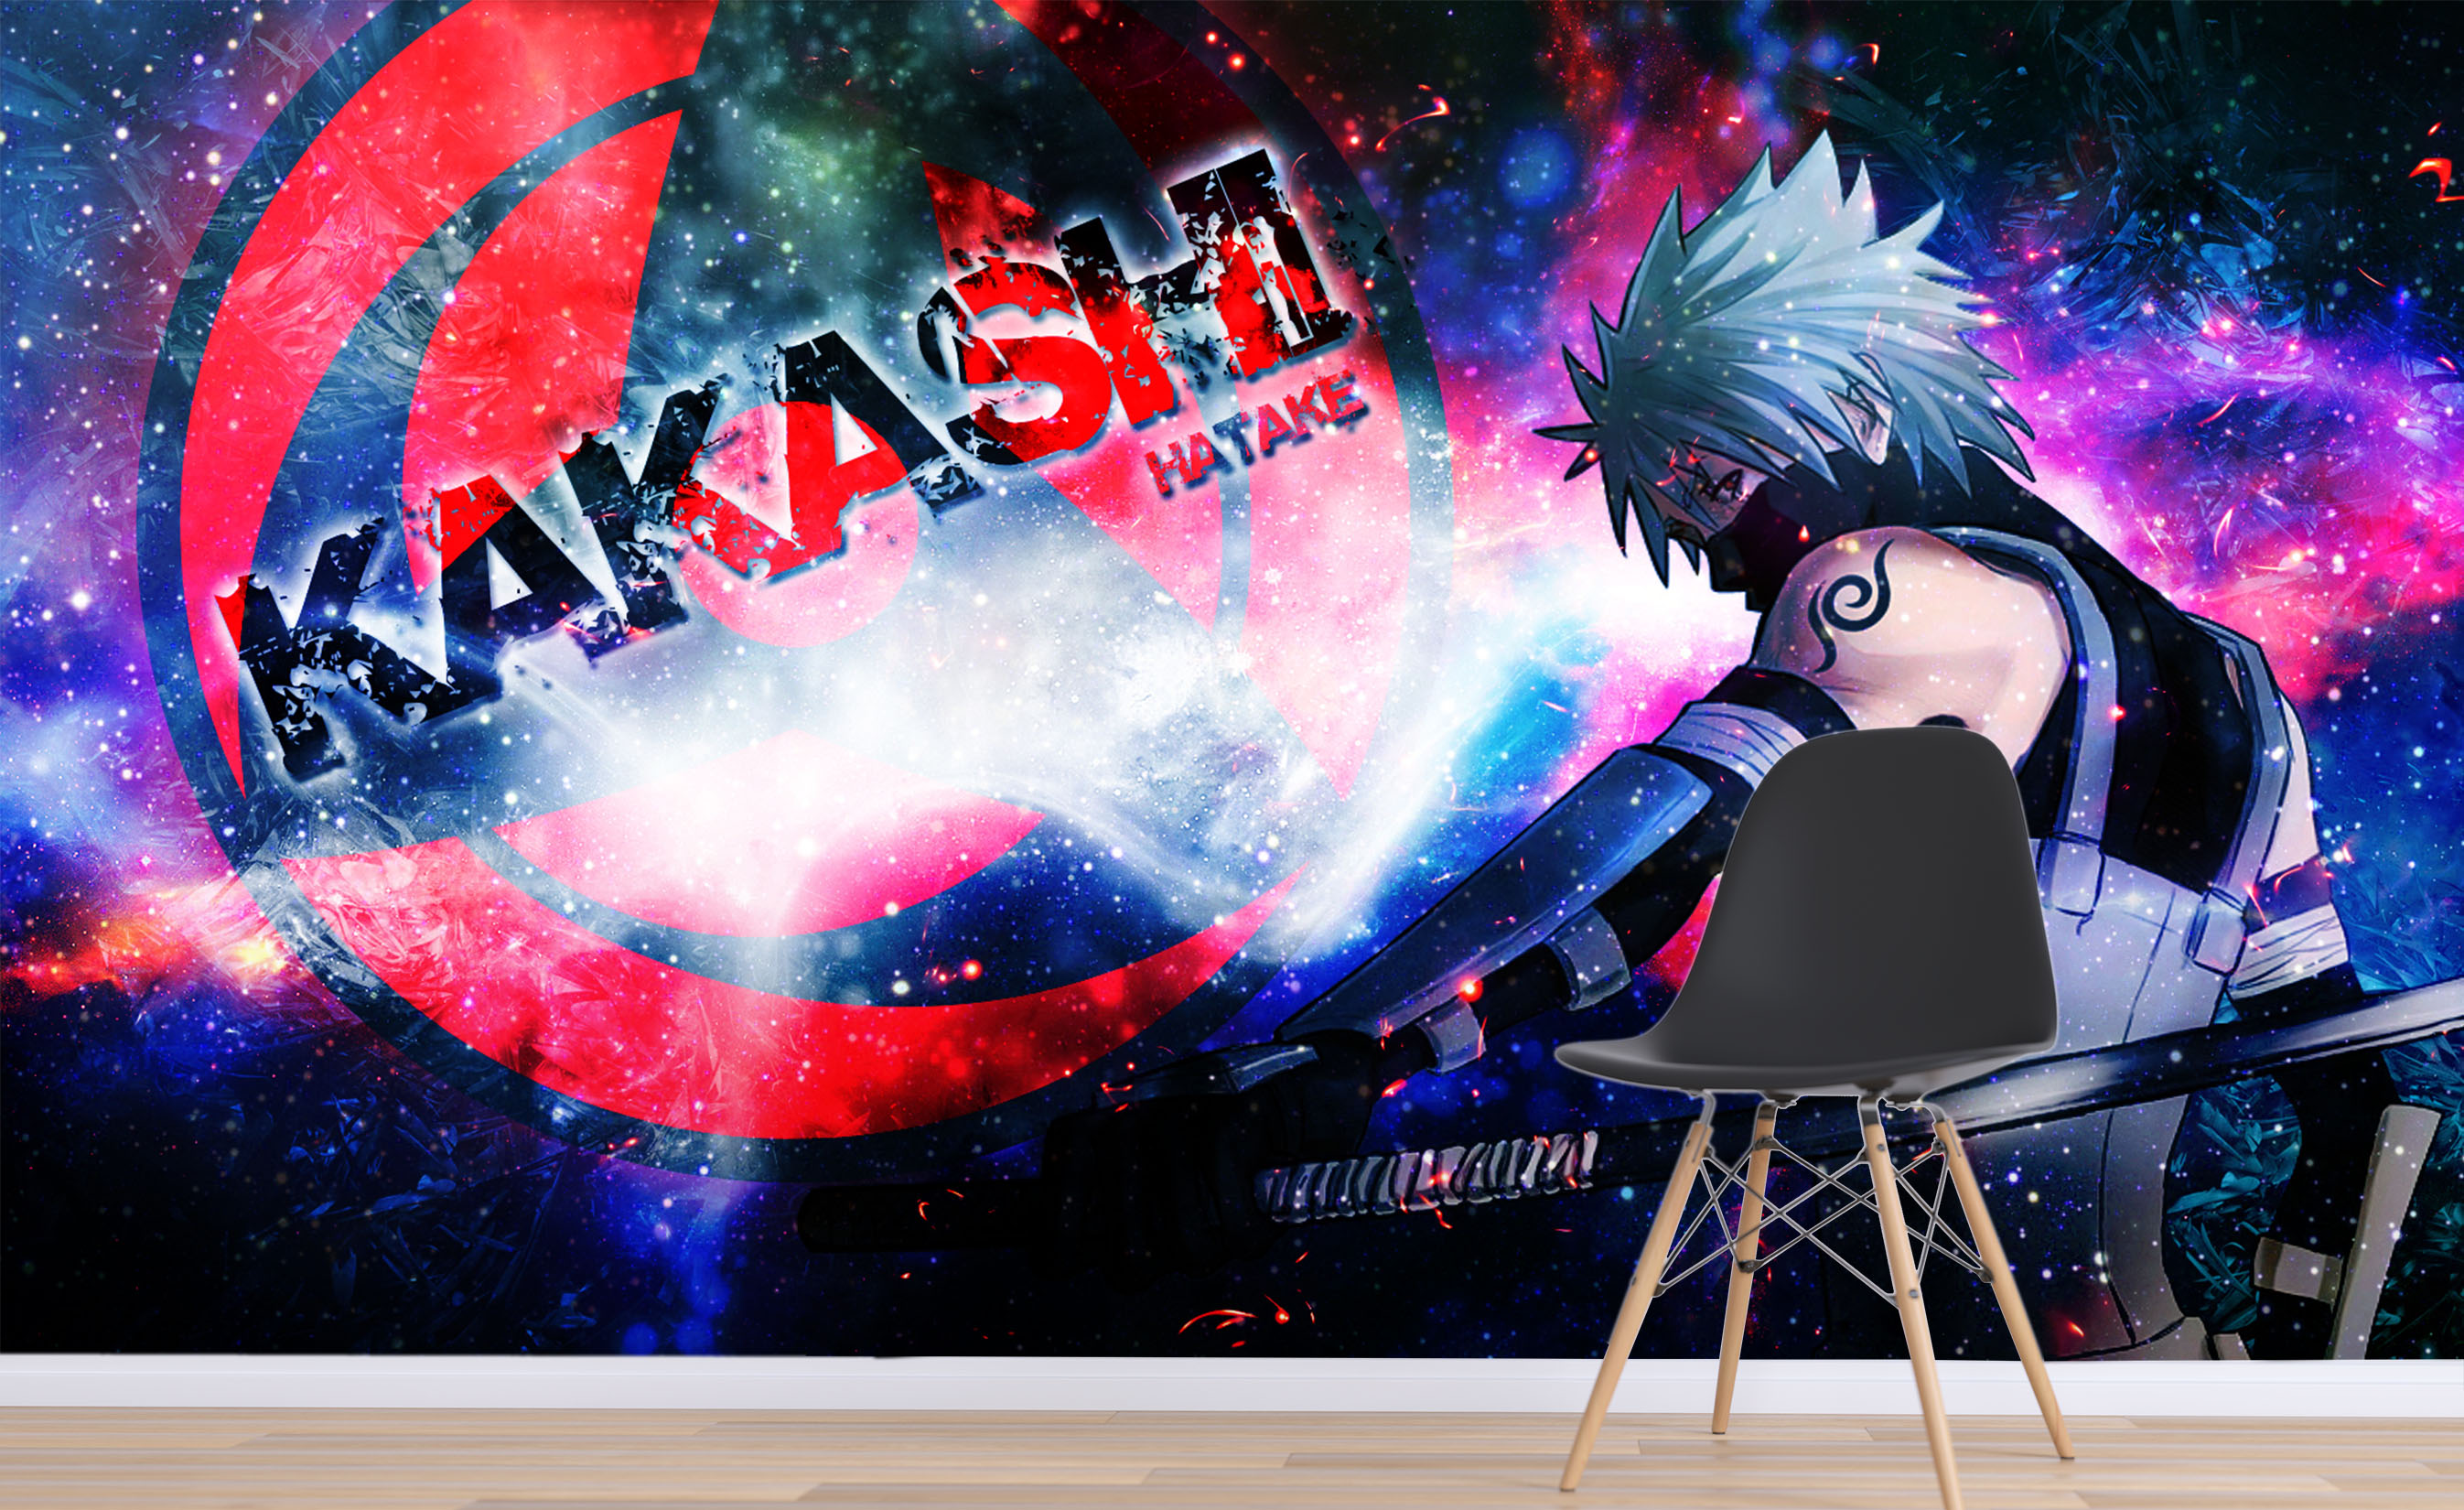 US $23 99 [Self Adhesive] 3D Naruto Japan Anime Wall Paper Mural Wall Print Decal Wall Murals Wallpapers